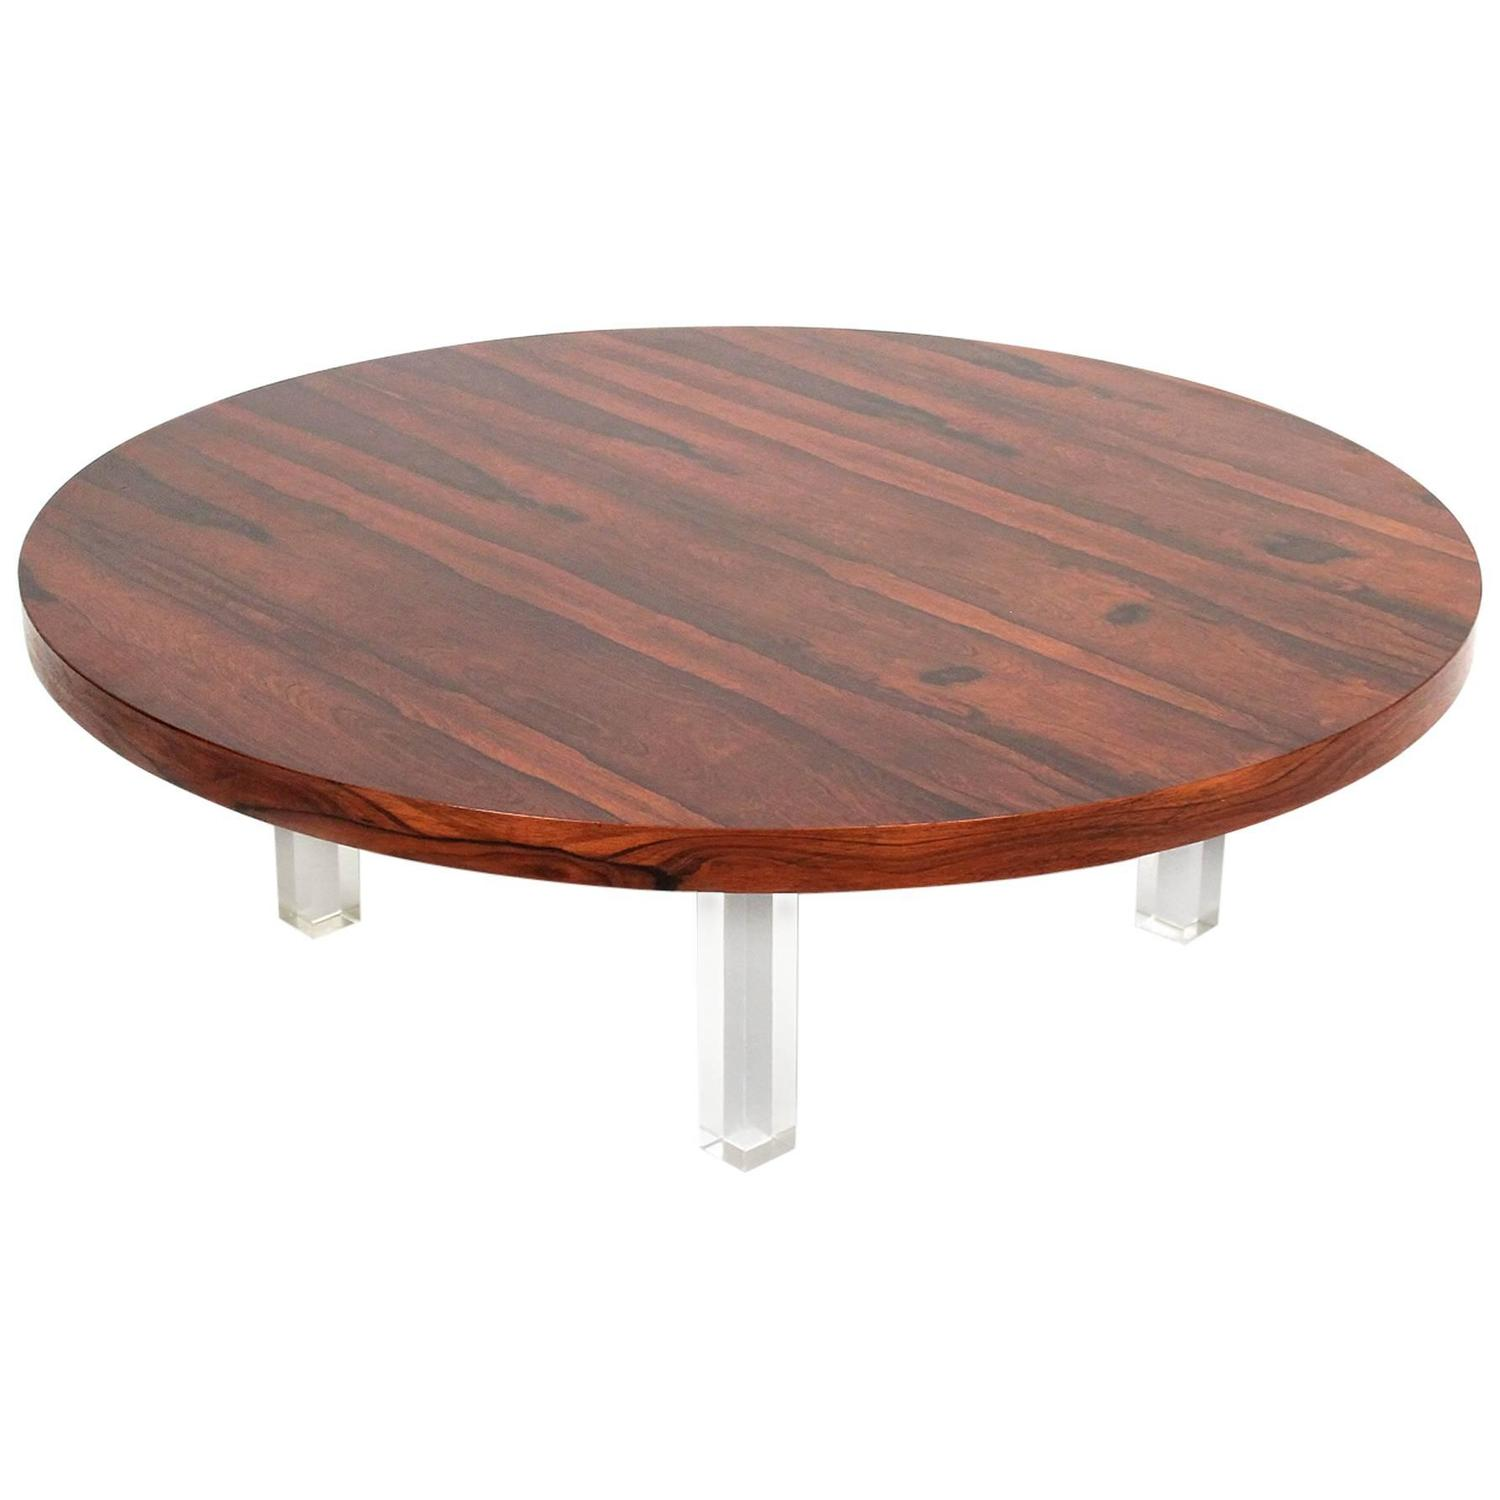 Circular Rosewood And Lucite Coffee Table By Milo Baughman At 1stdibs